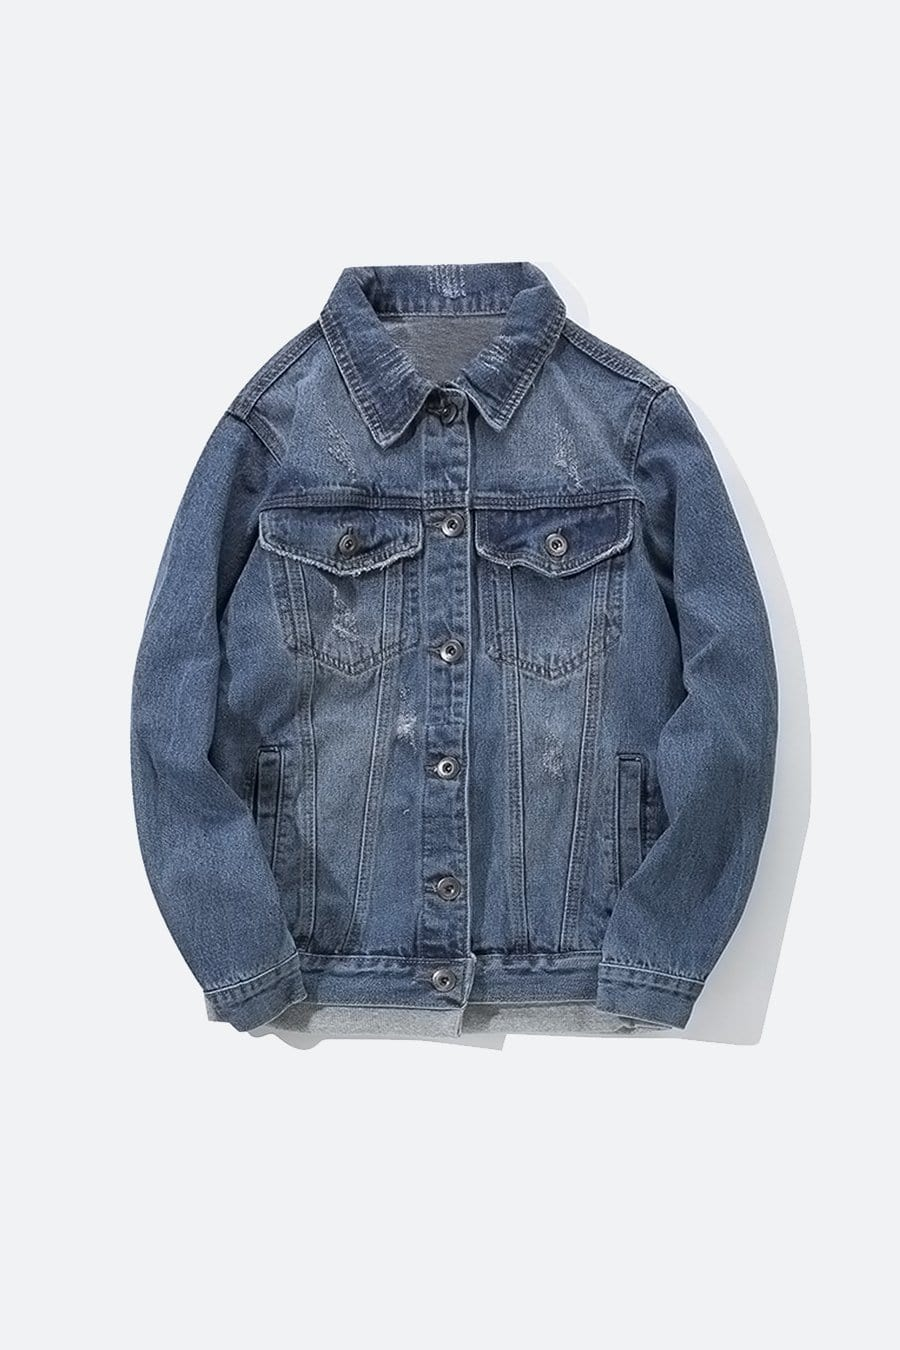 Nonsense Denim Jacket